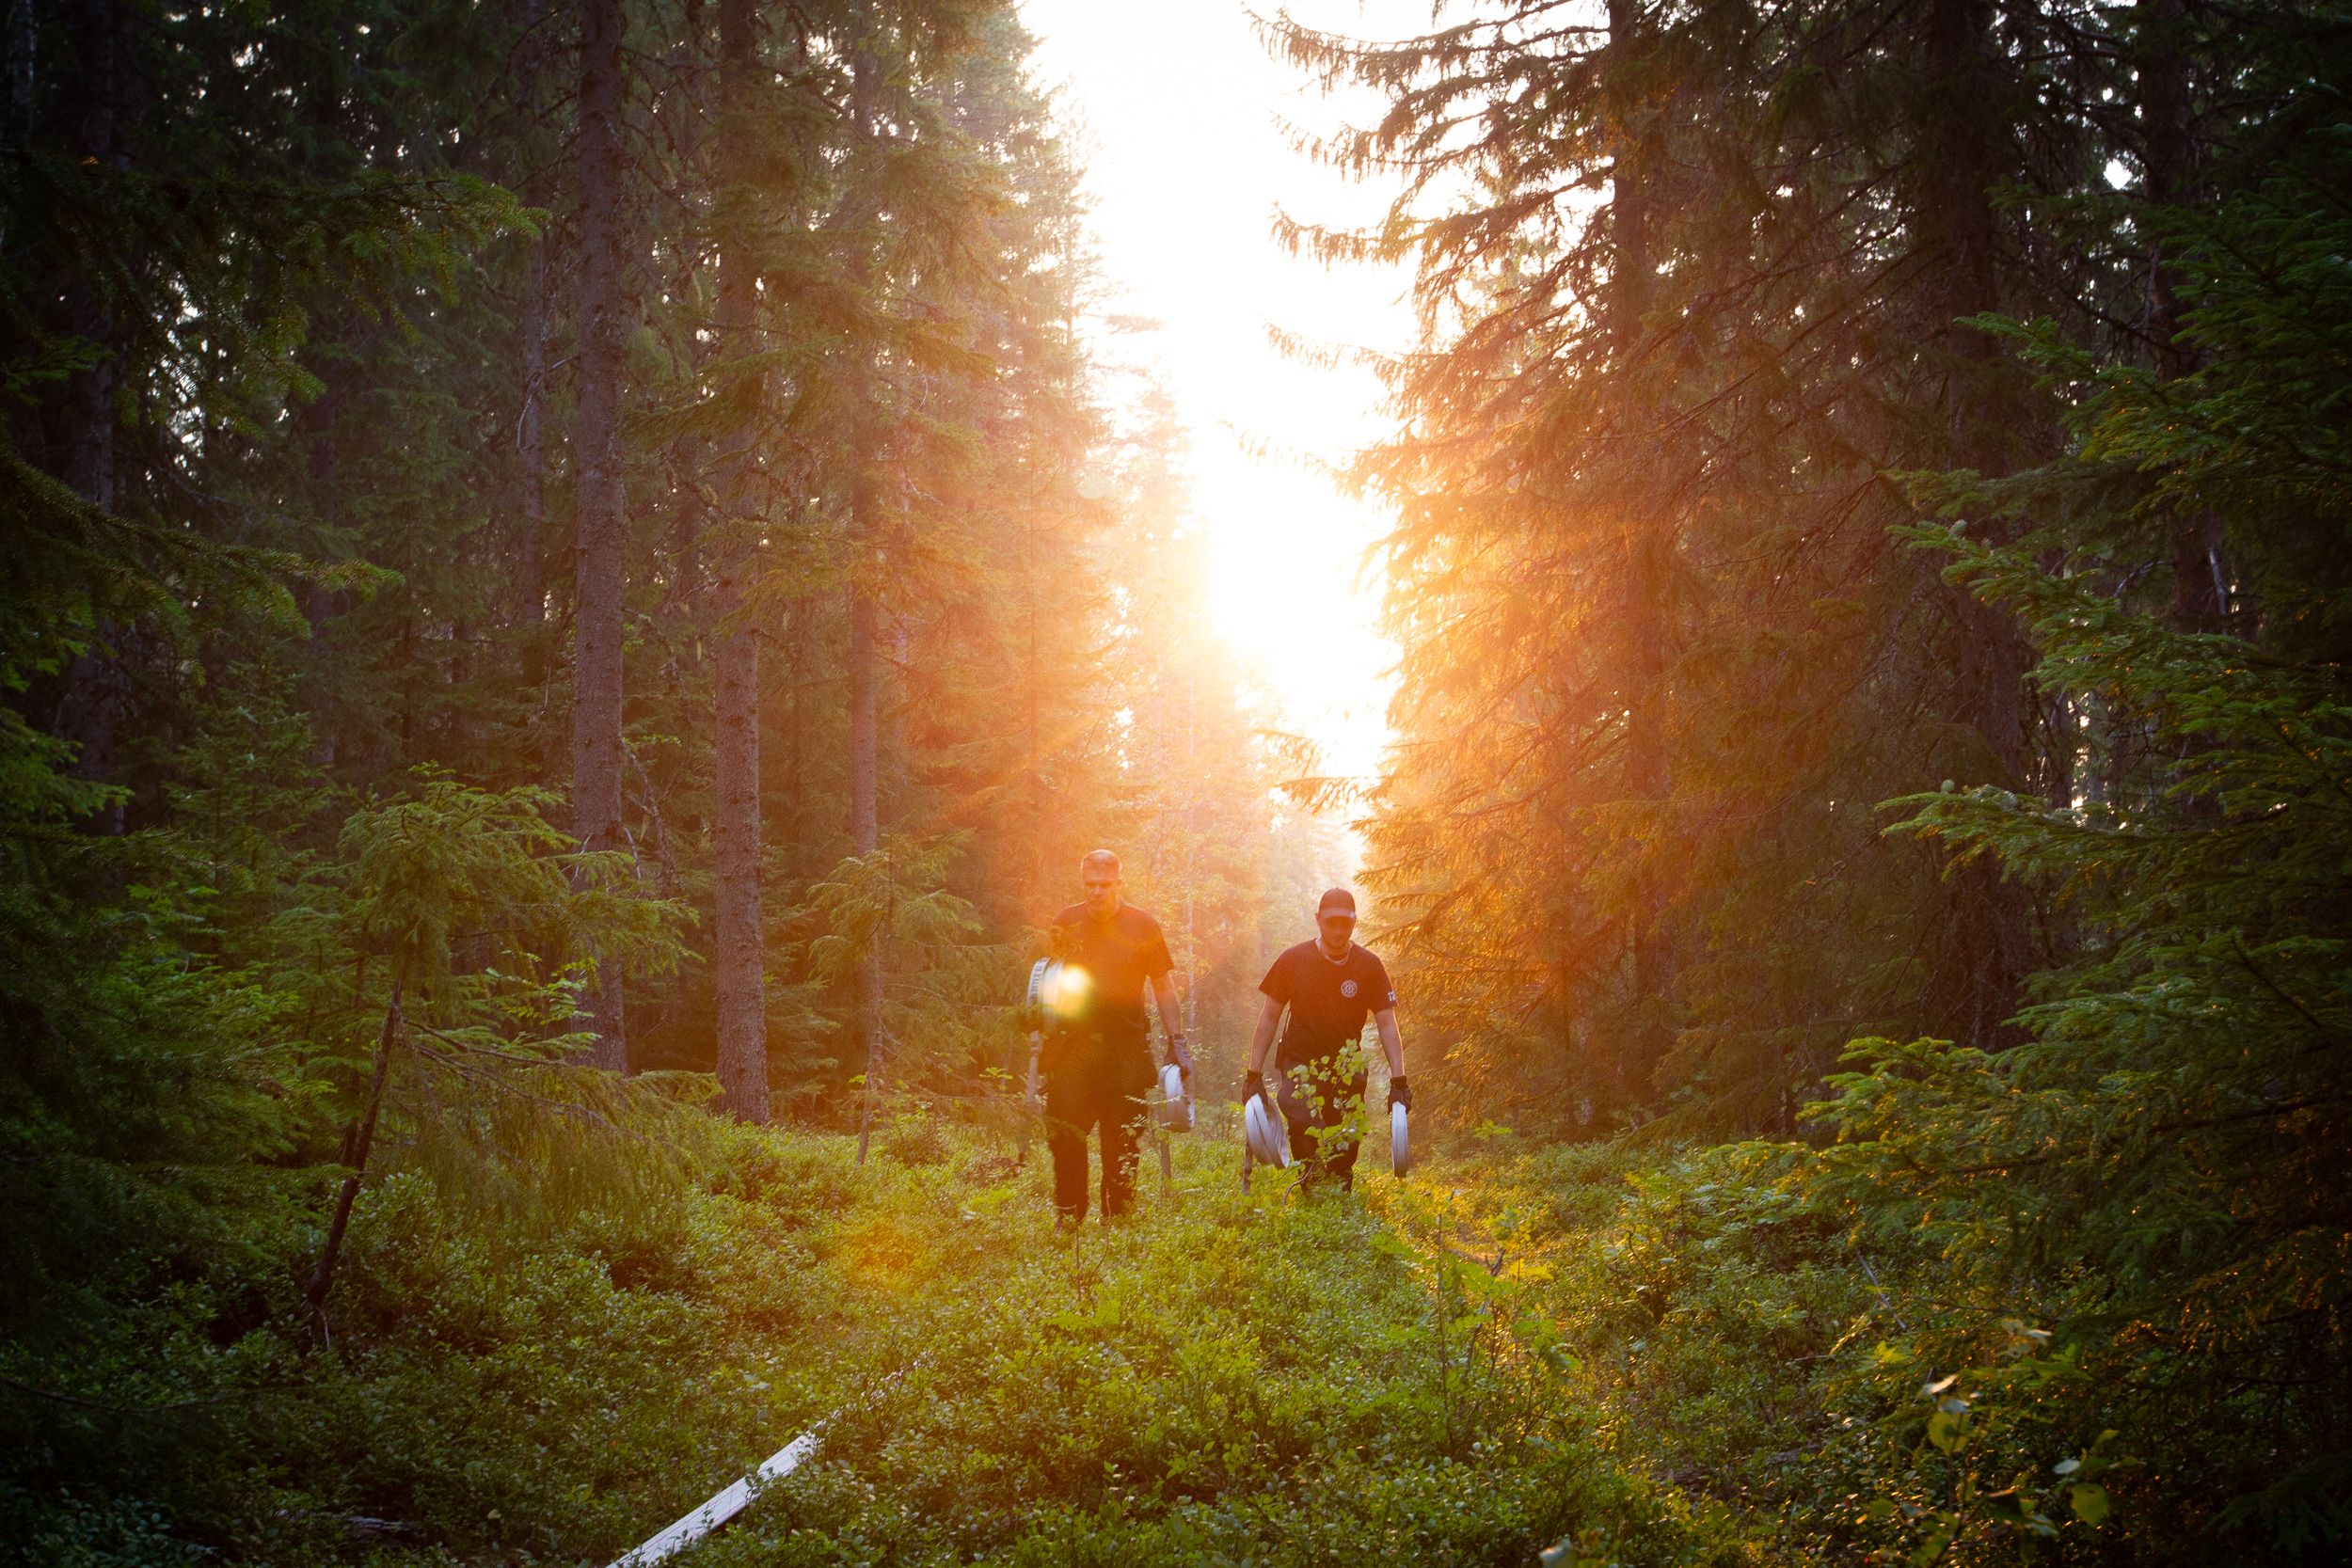 Two firefighters carrying extra fire hoses in the evening sun to combat a forest fire in Hälsingland, Sweden.